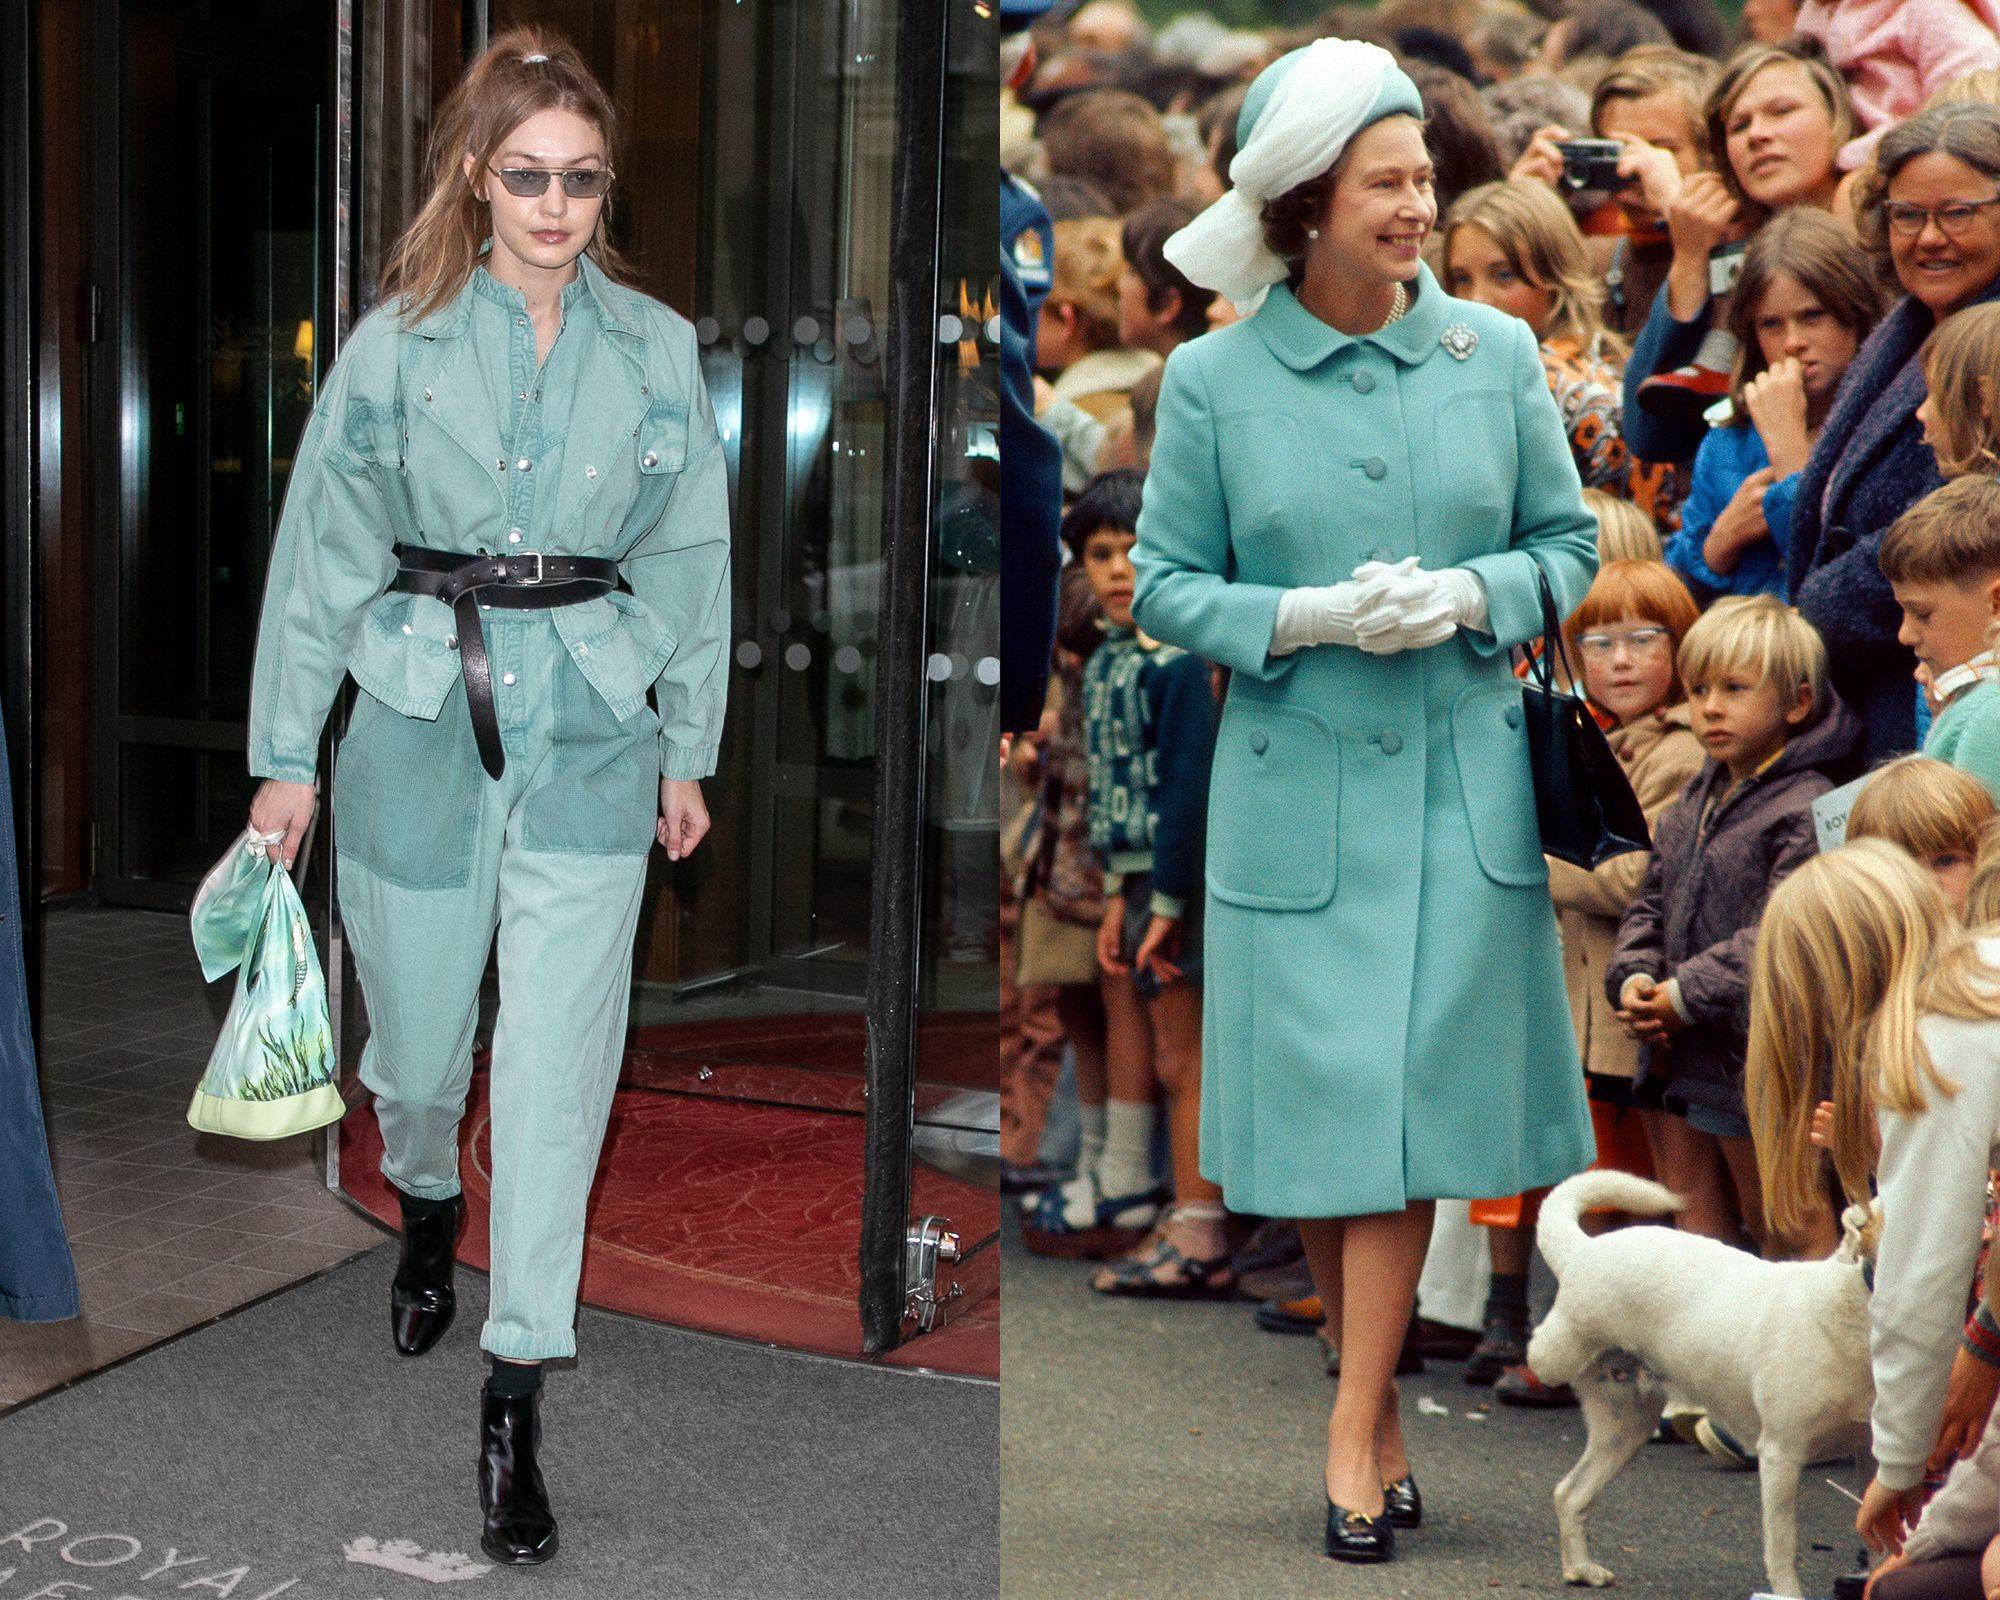 Gigi Hadid vs. the Queen